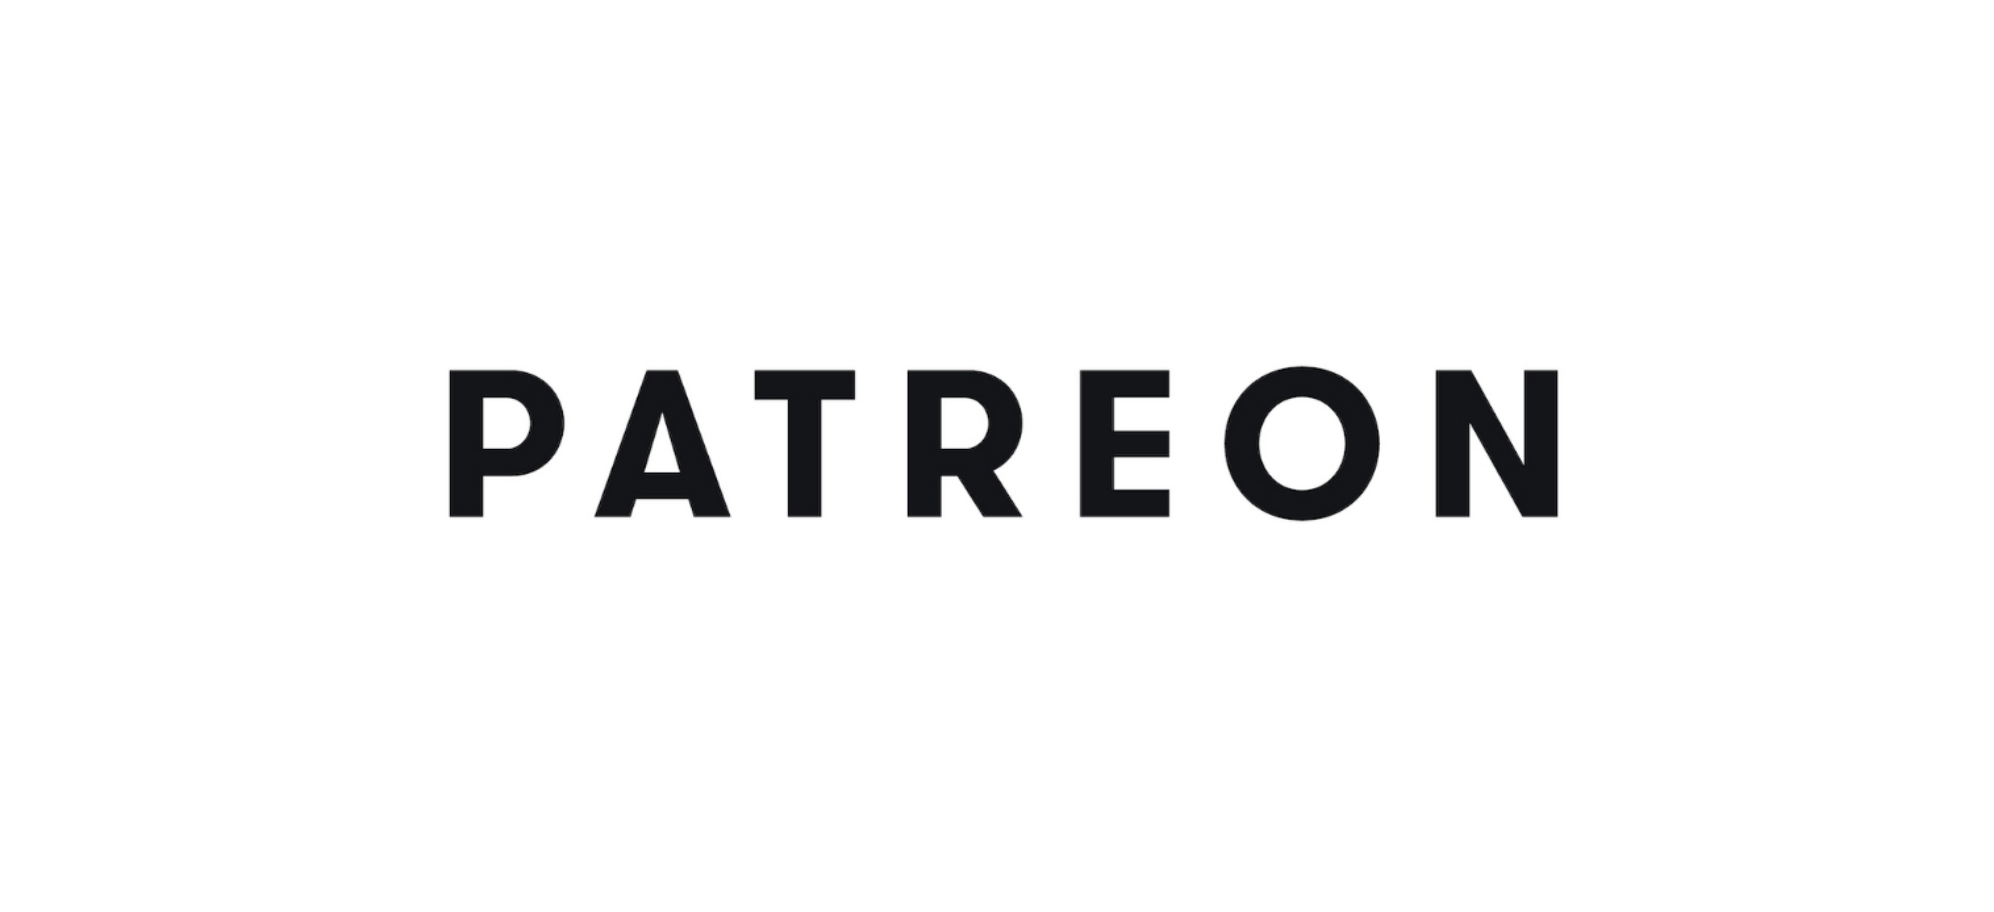 on Patreon